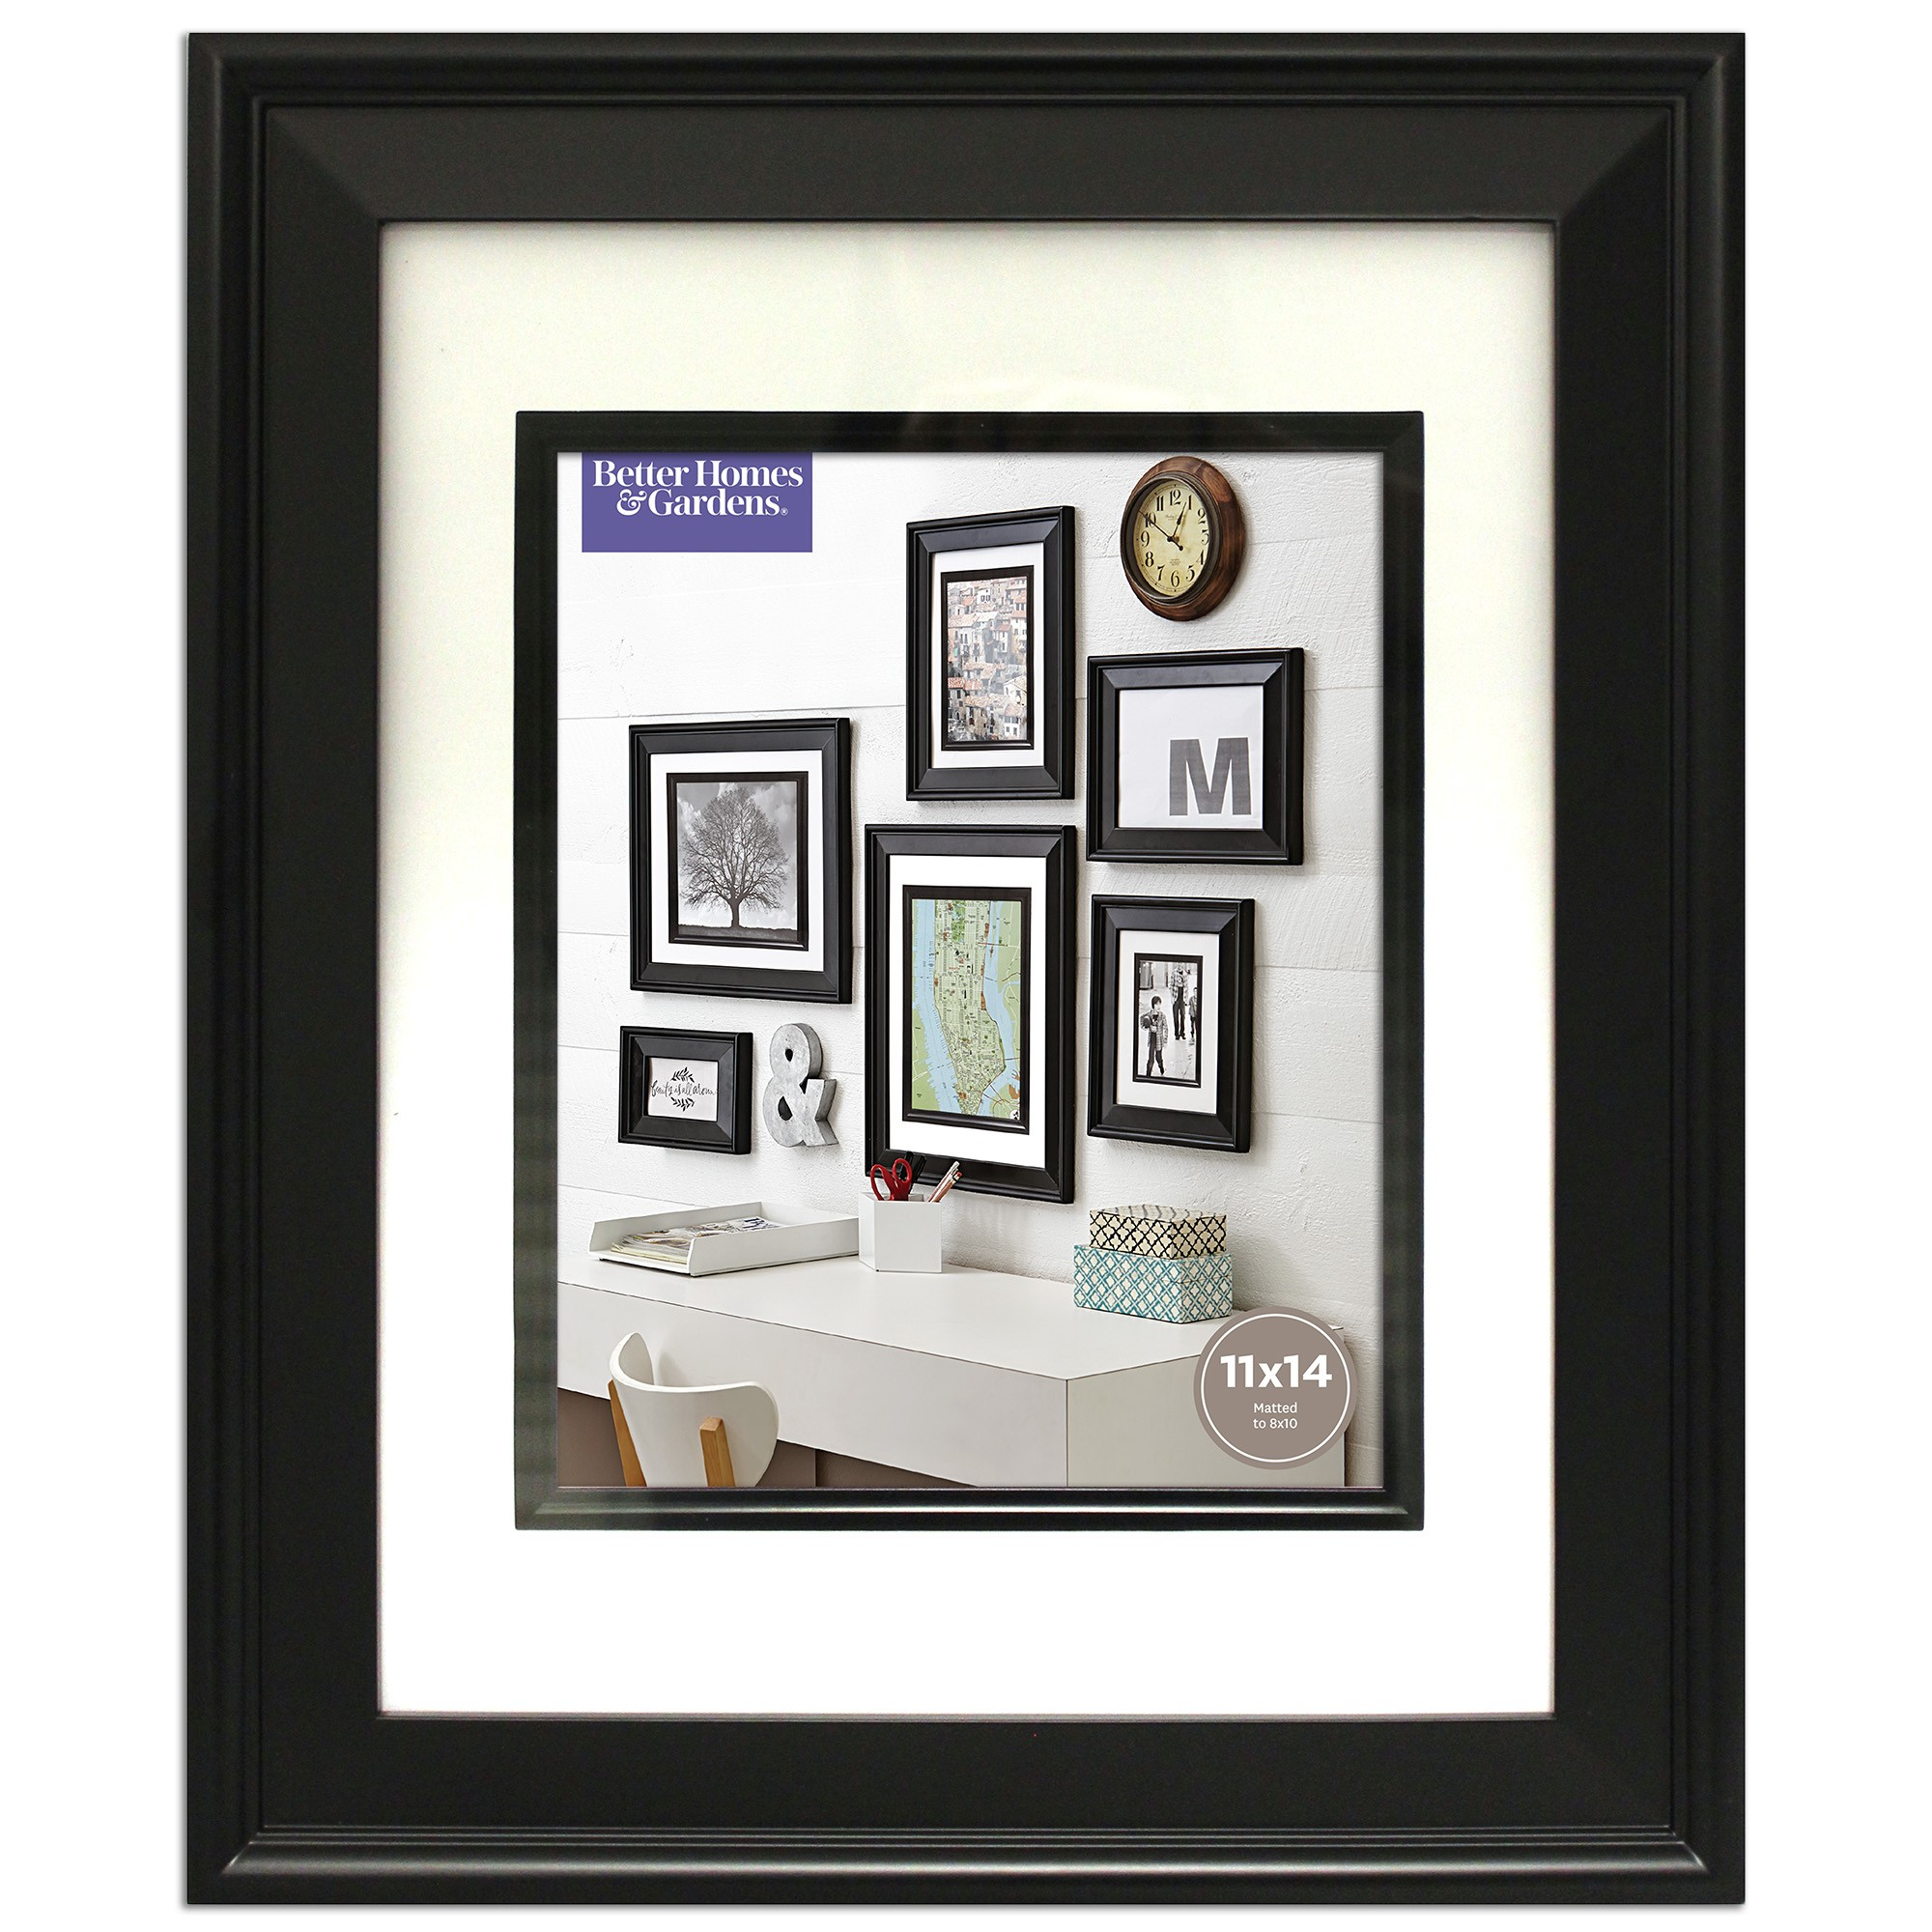 Better Homes and Gardens 11x14 Beveled Picture Frame, Black